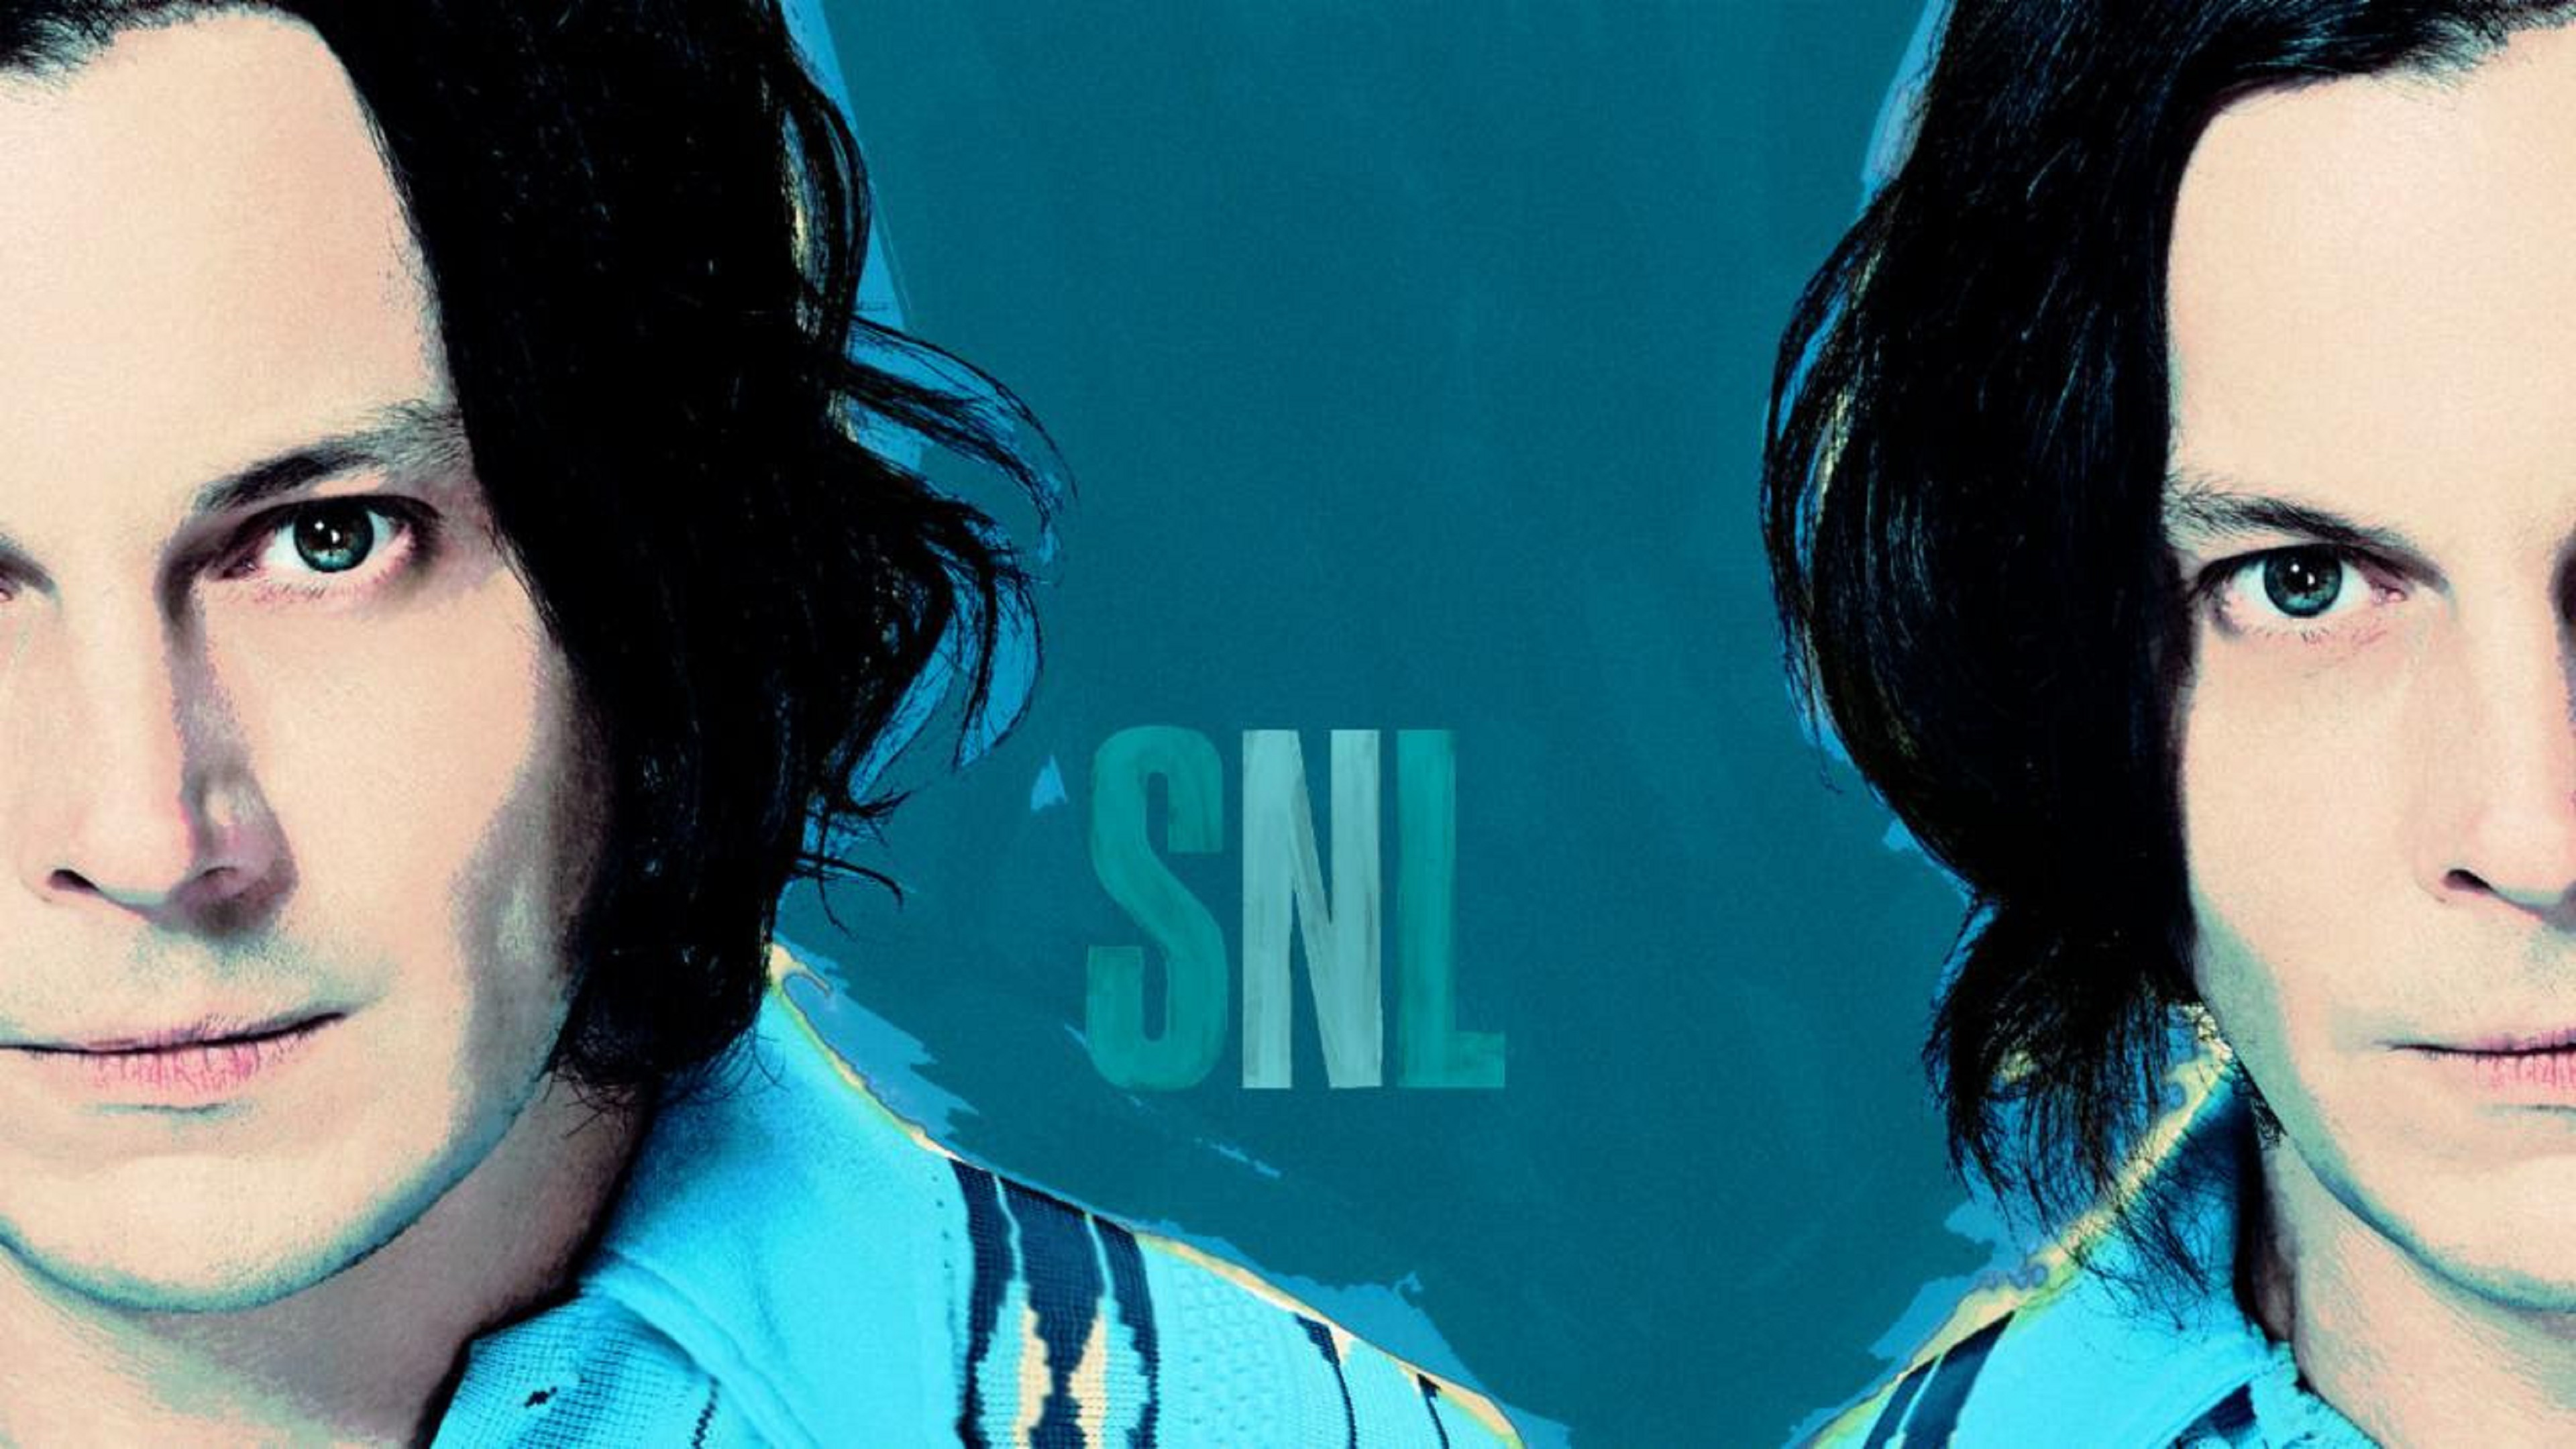 Jack White performed on SNL last night